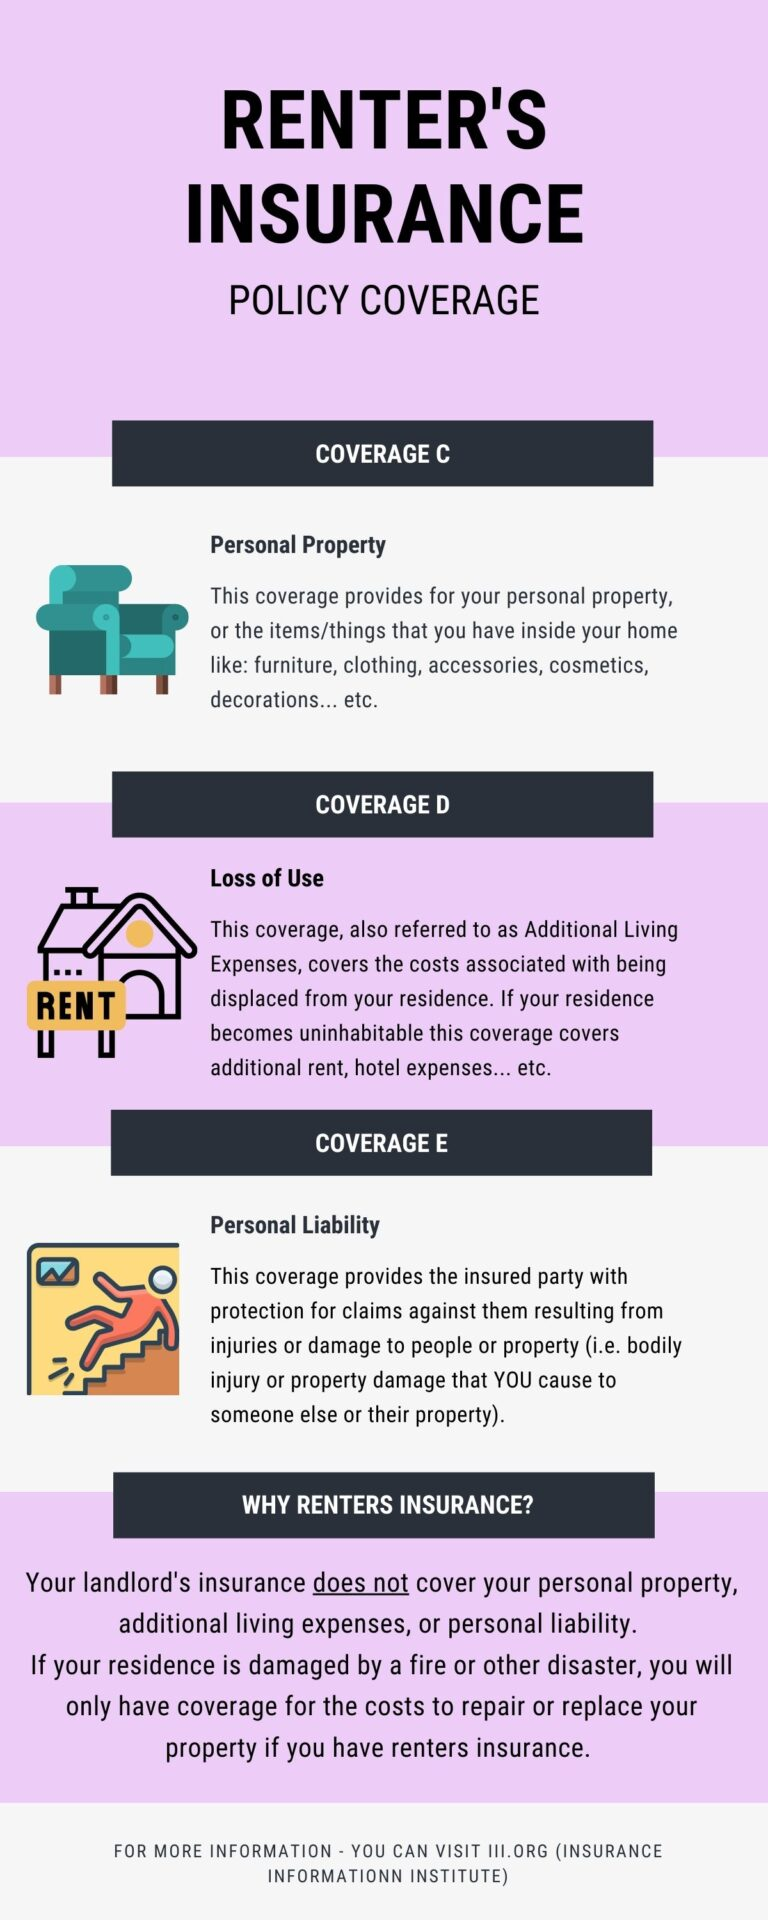 renters insurance policy coverage infographic